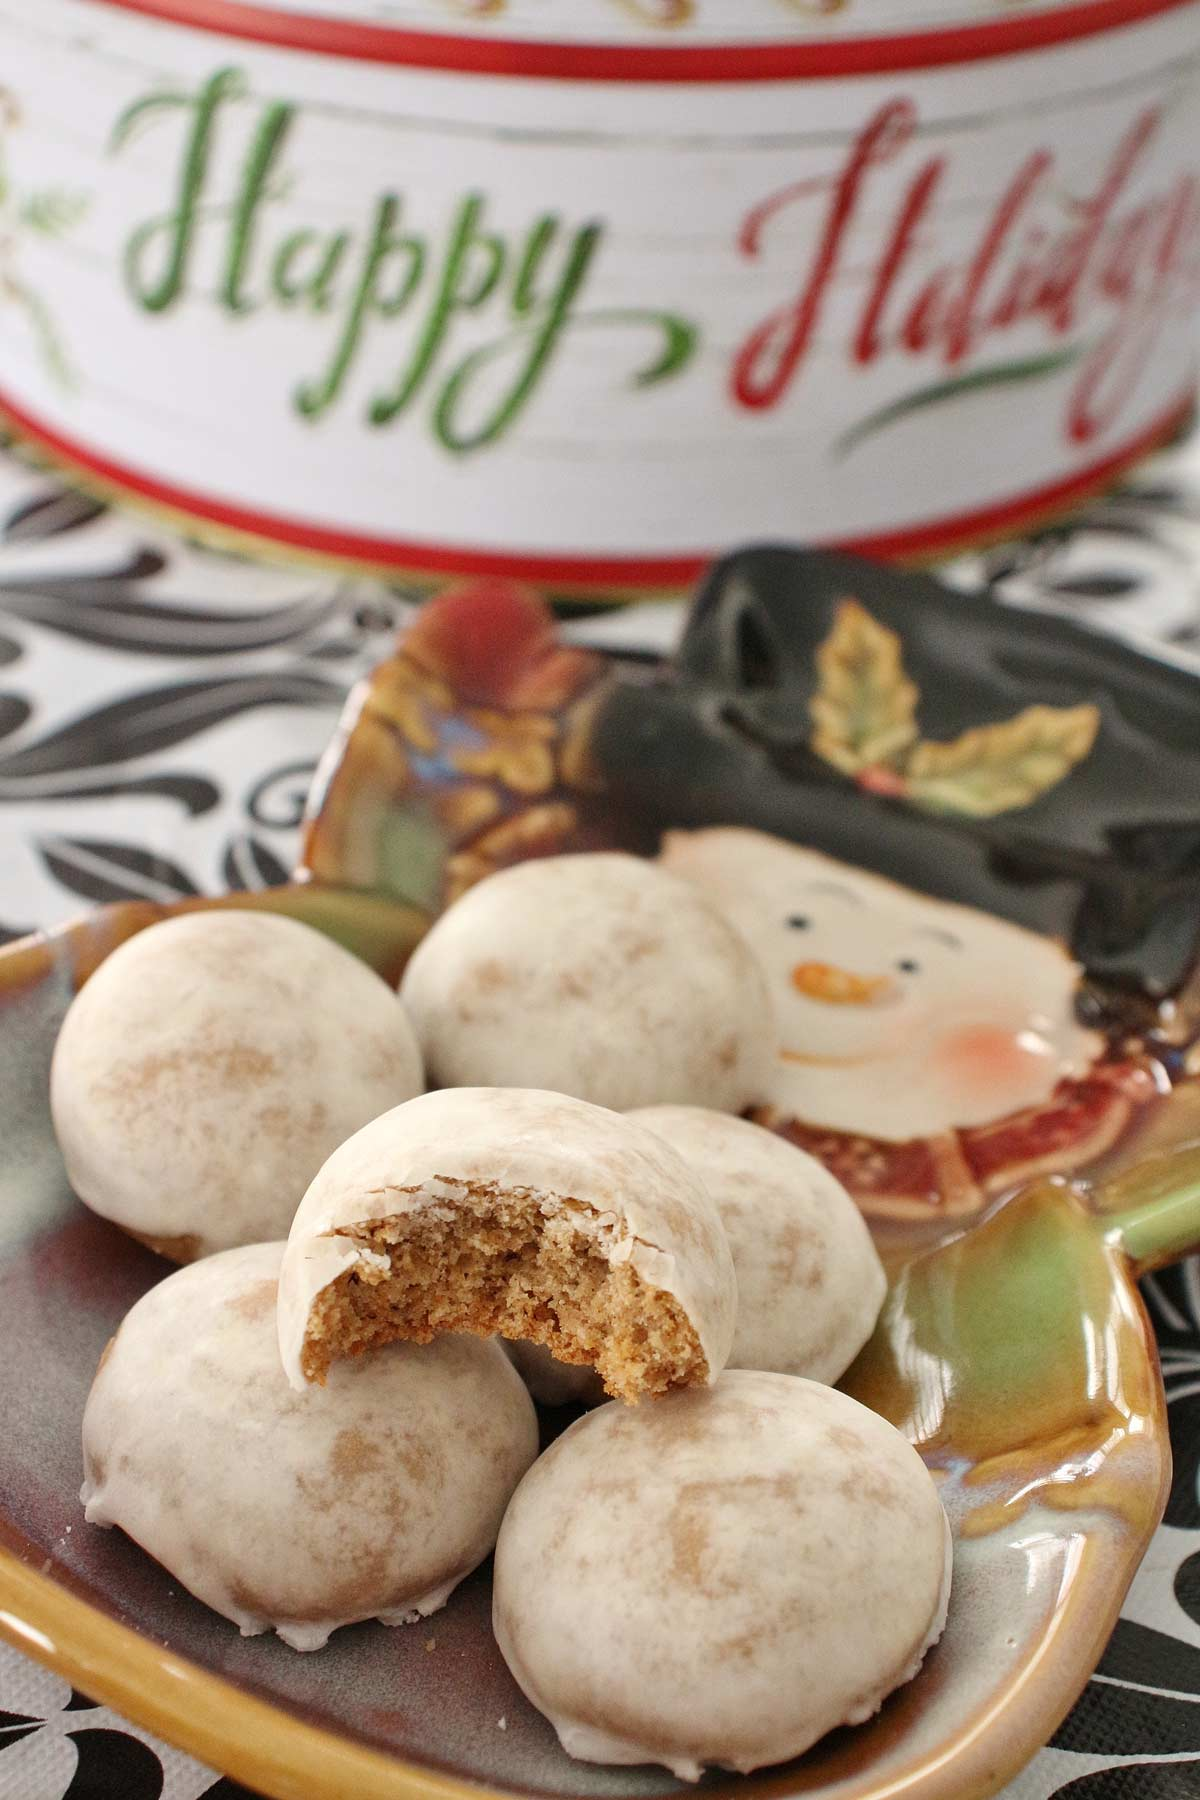 Round iced spice cookies piled on a snowman shaped plate.